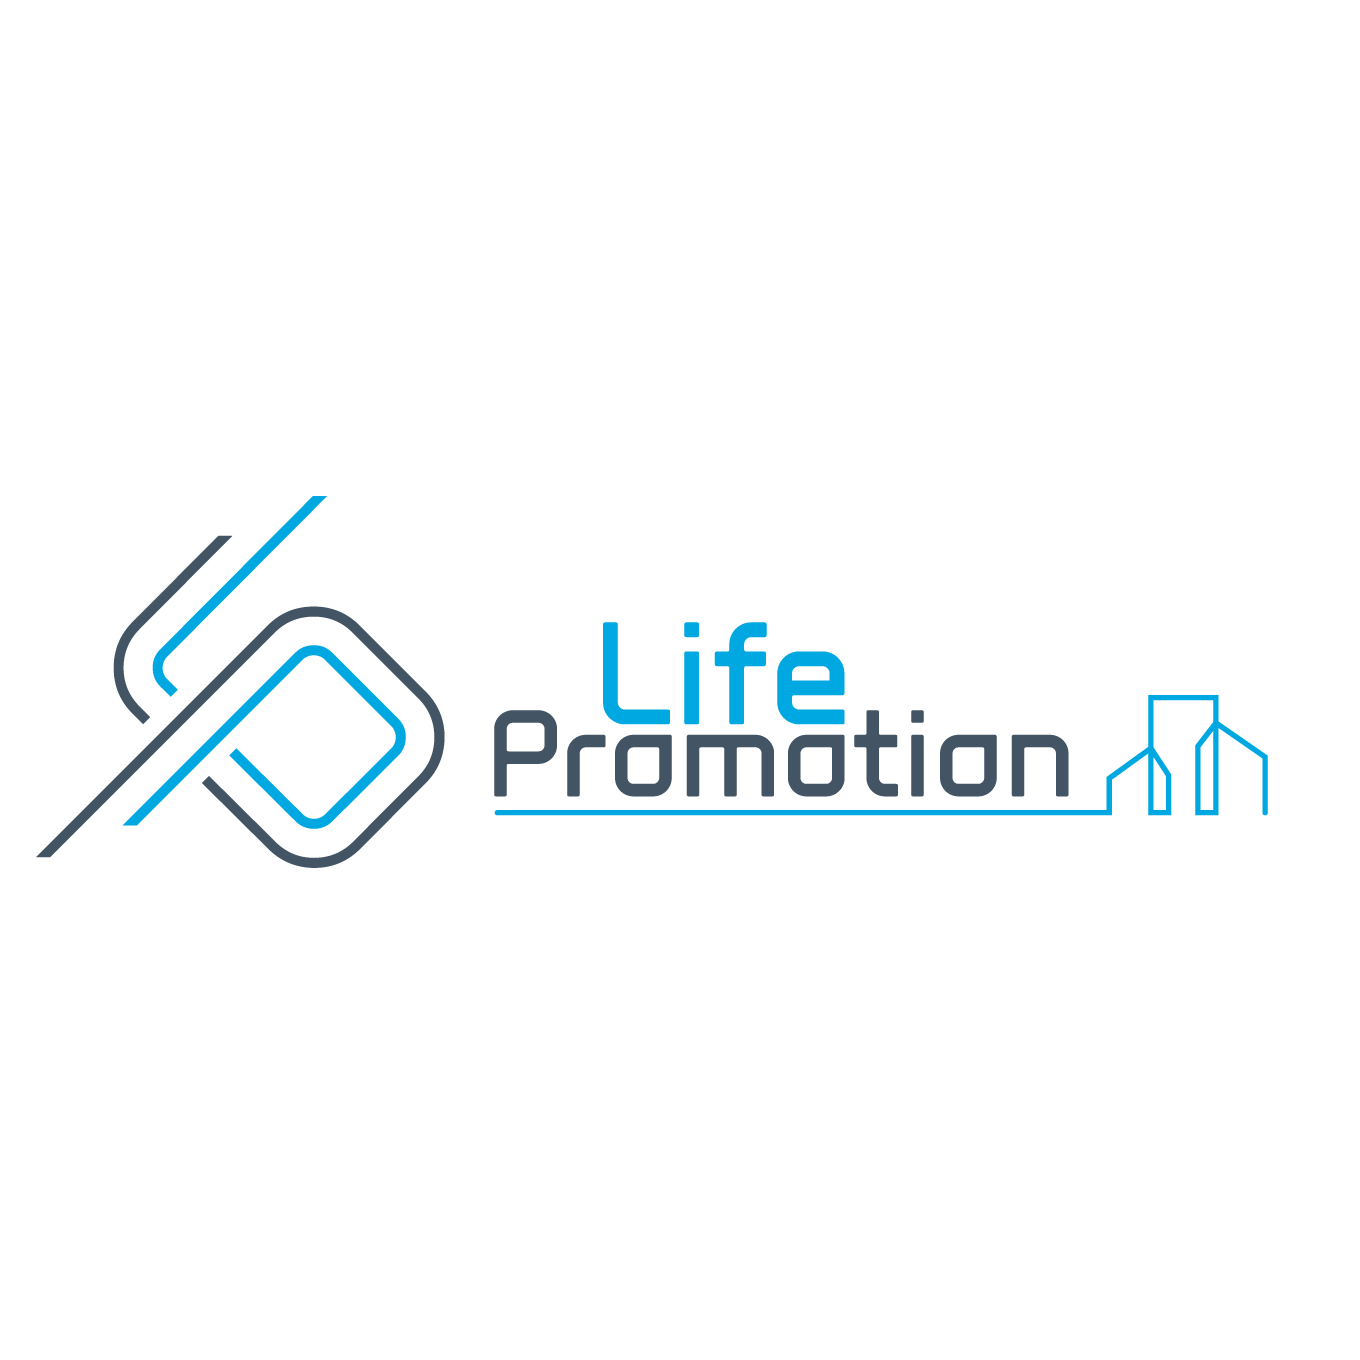 life promotion